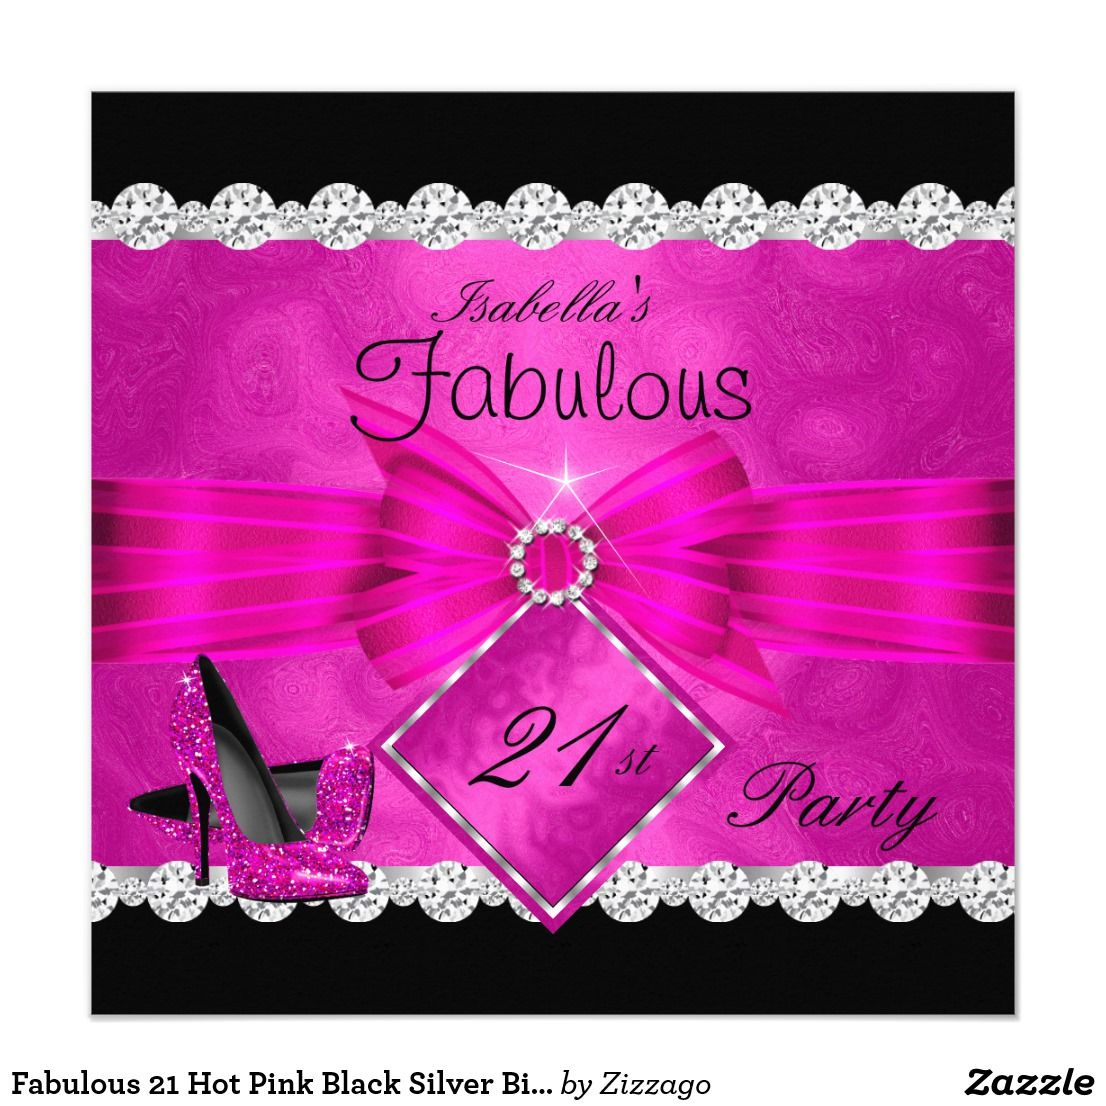 Fabulous 21 Hot Pink Black Silver Birthday Party 2